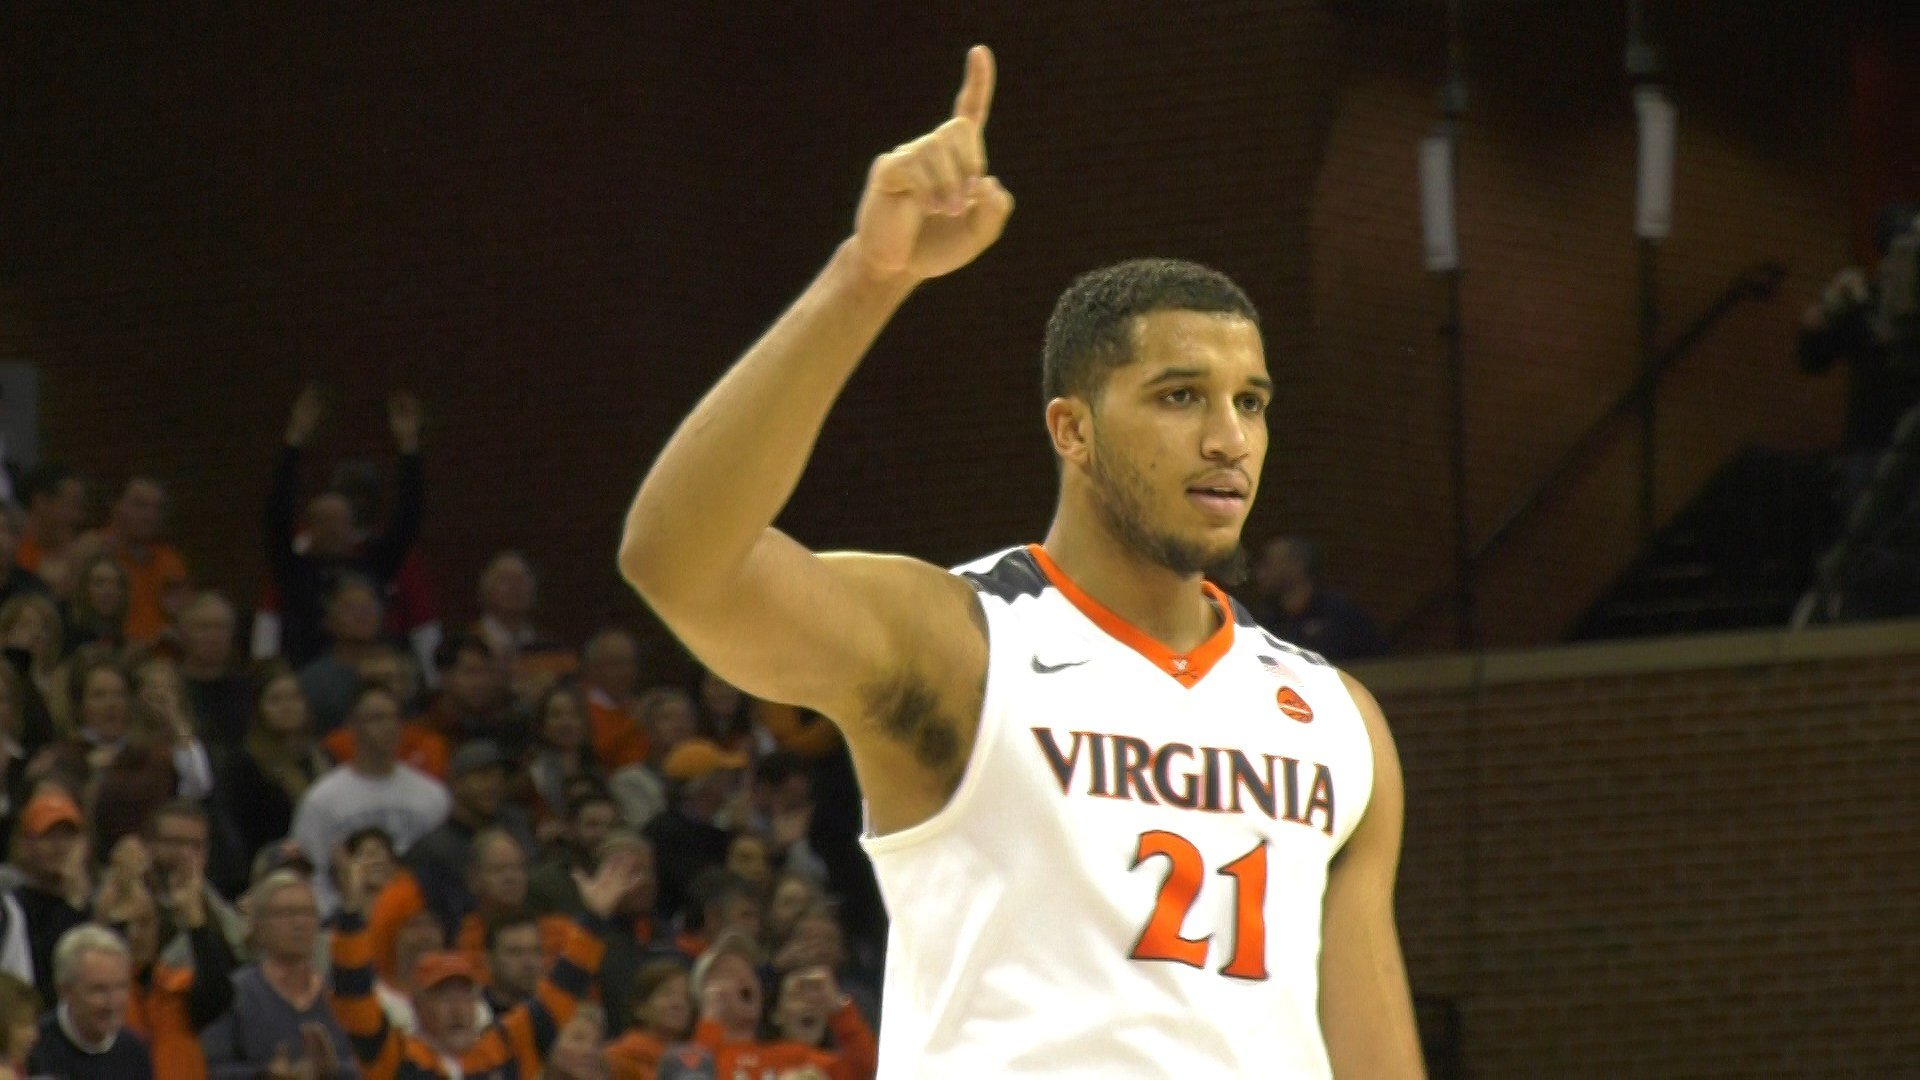 UVa senior Isaiah Wilkins